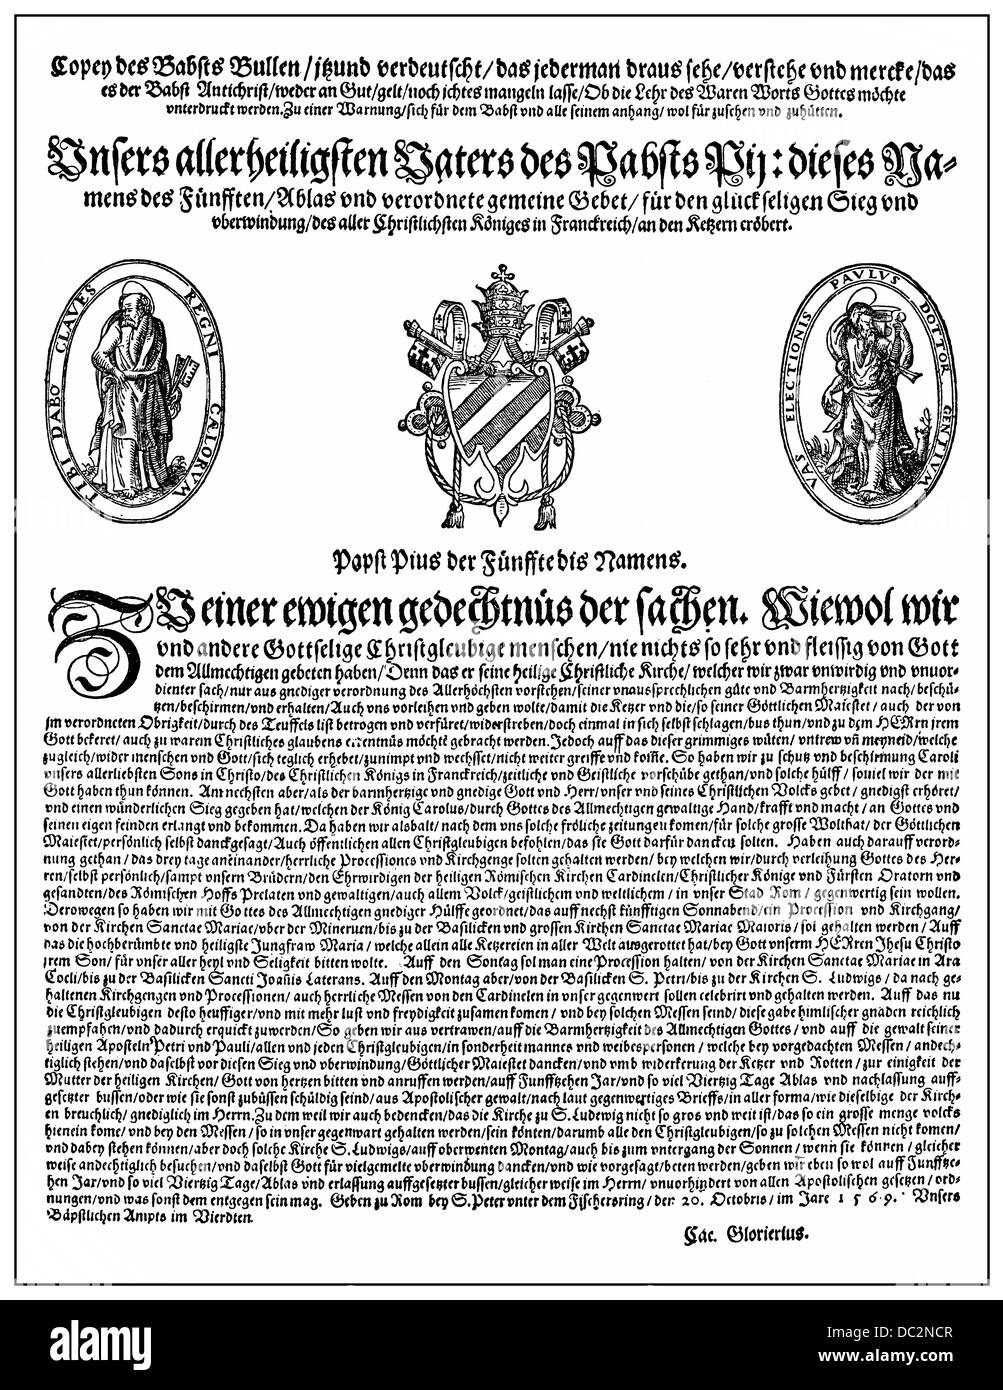 Papal bull Hebraeorum Gens from 1569 for expulsion of the Jews, Pope Pius V or Antonio Michele Ghislieri, 1504-1572 - Stock Image